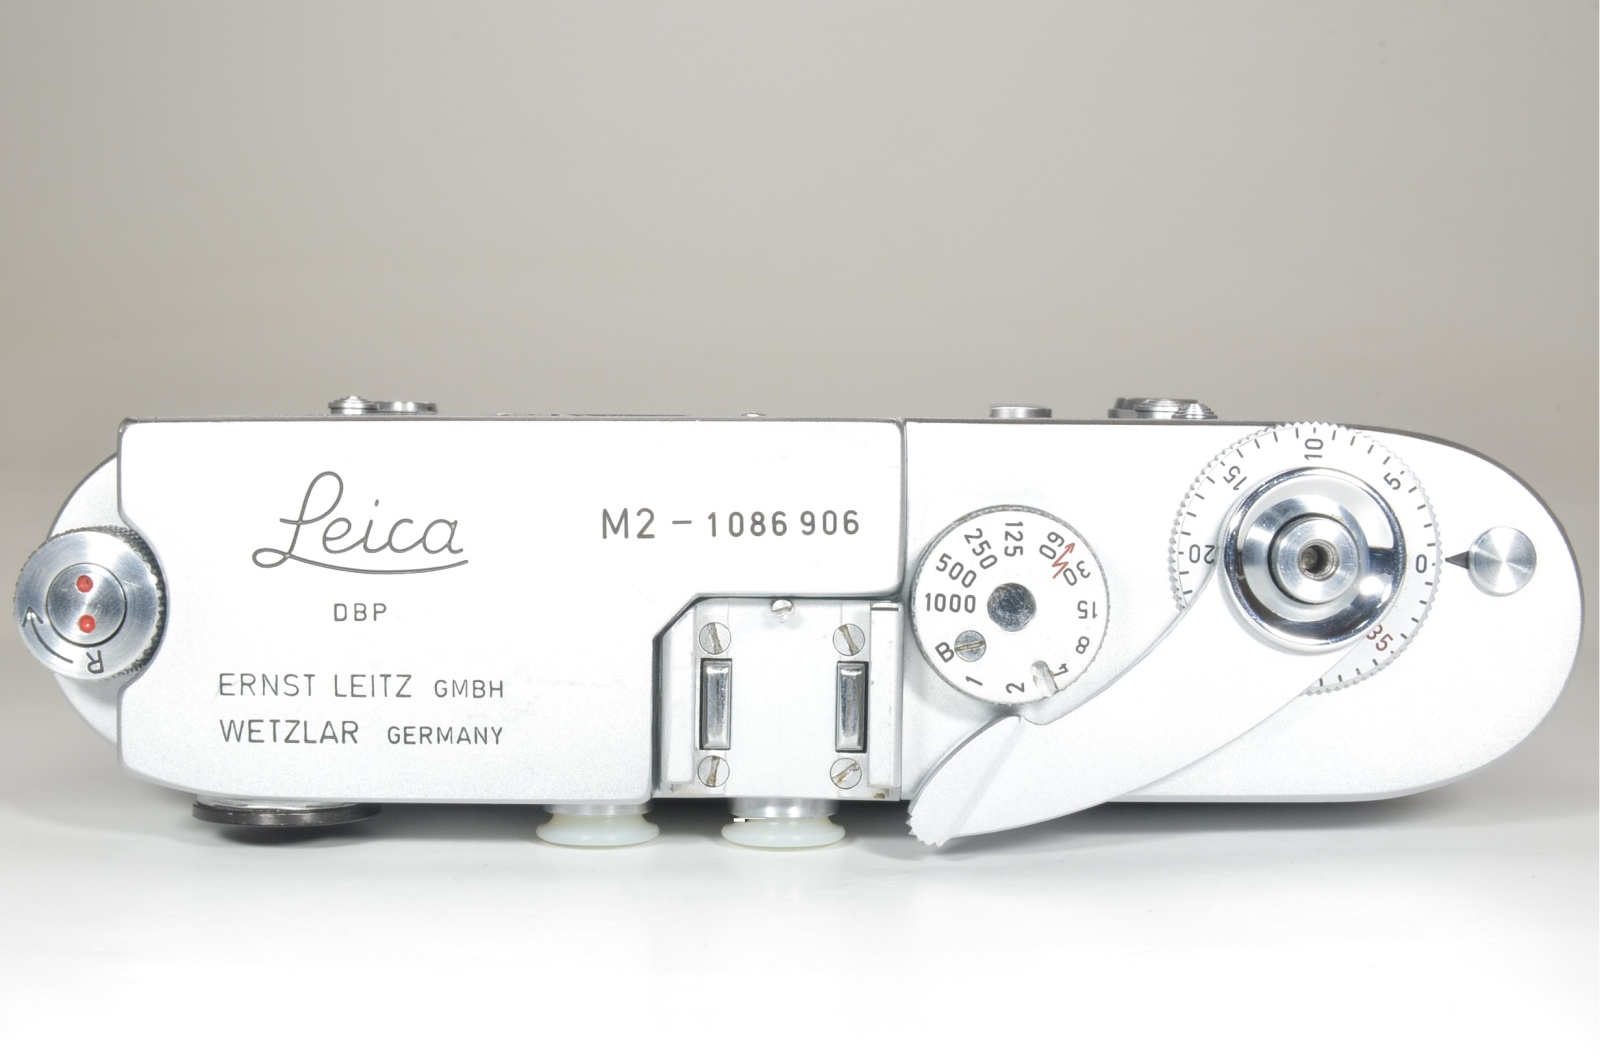 leica m2 self timer rangefinder film camera s/n 1086906 year 1963